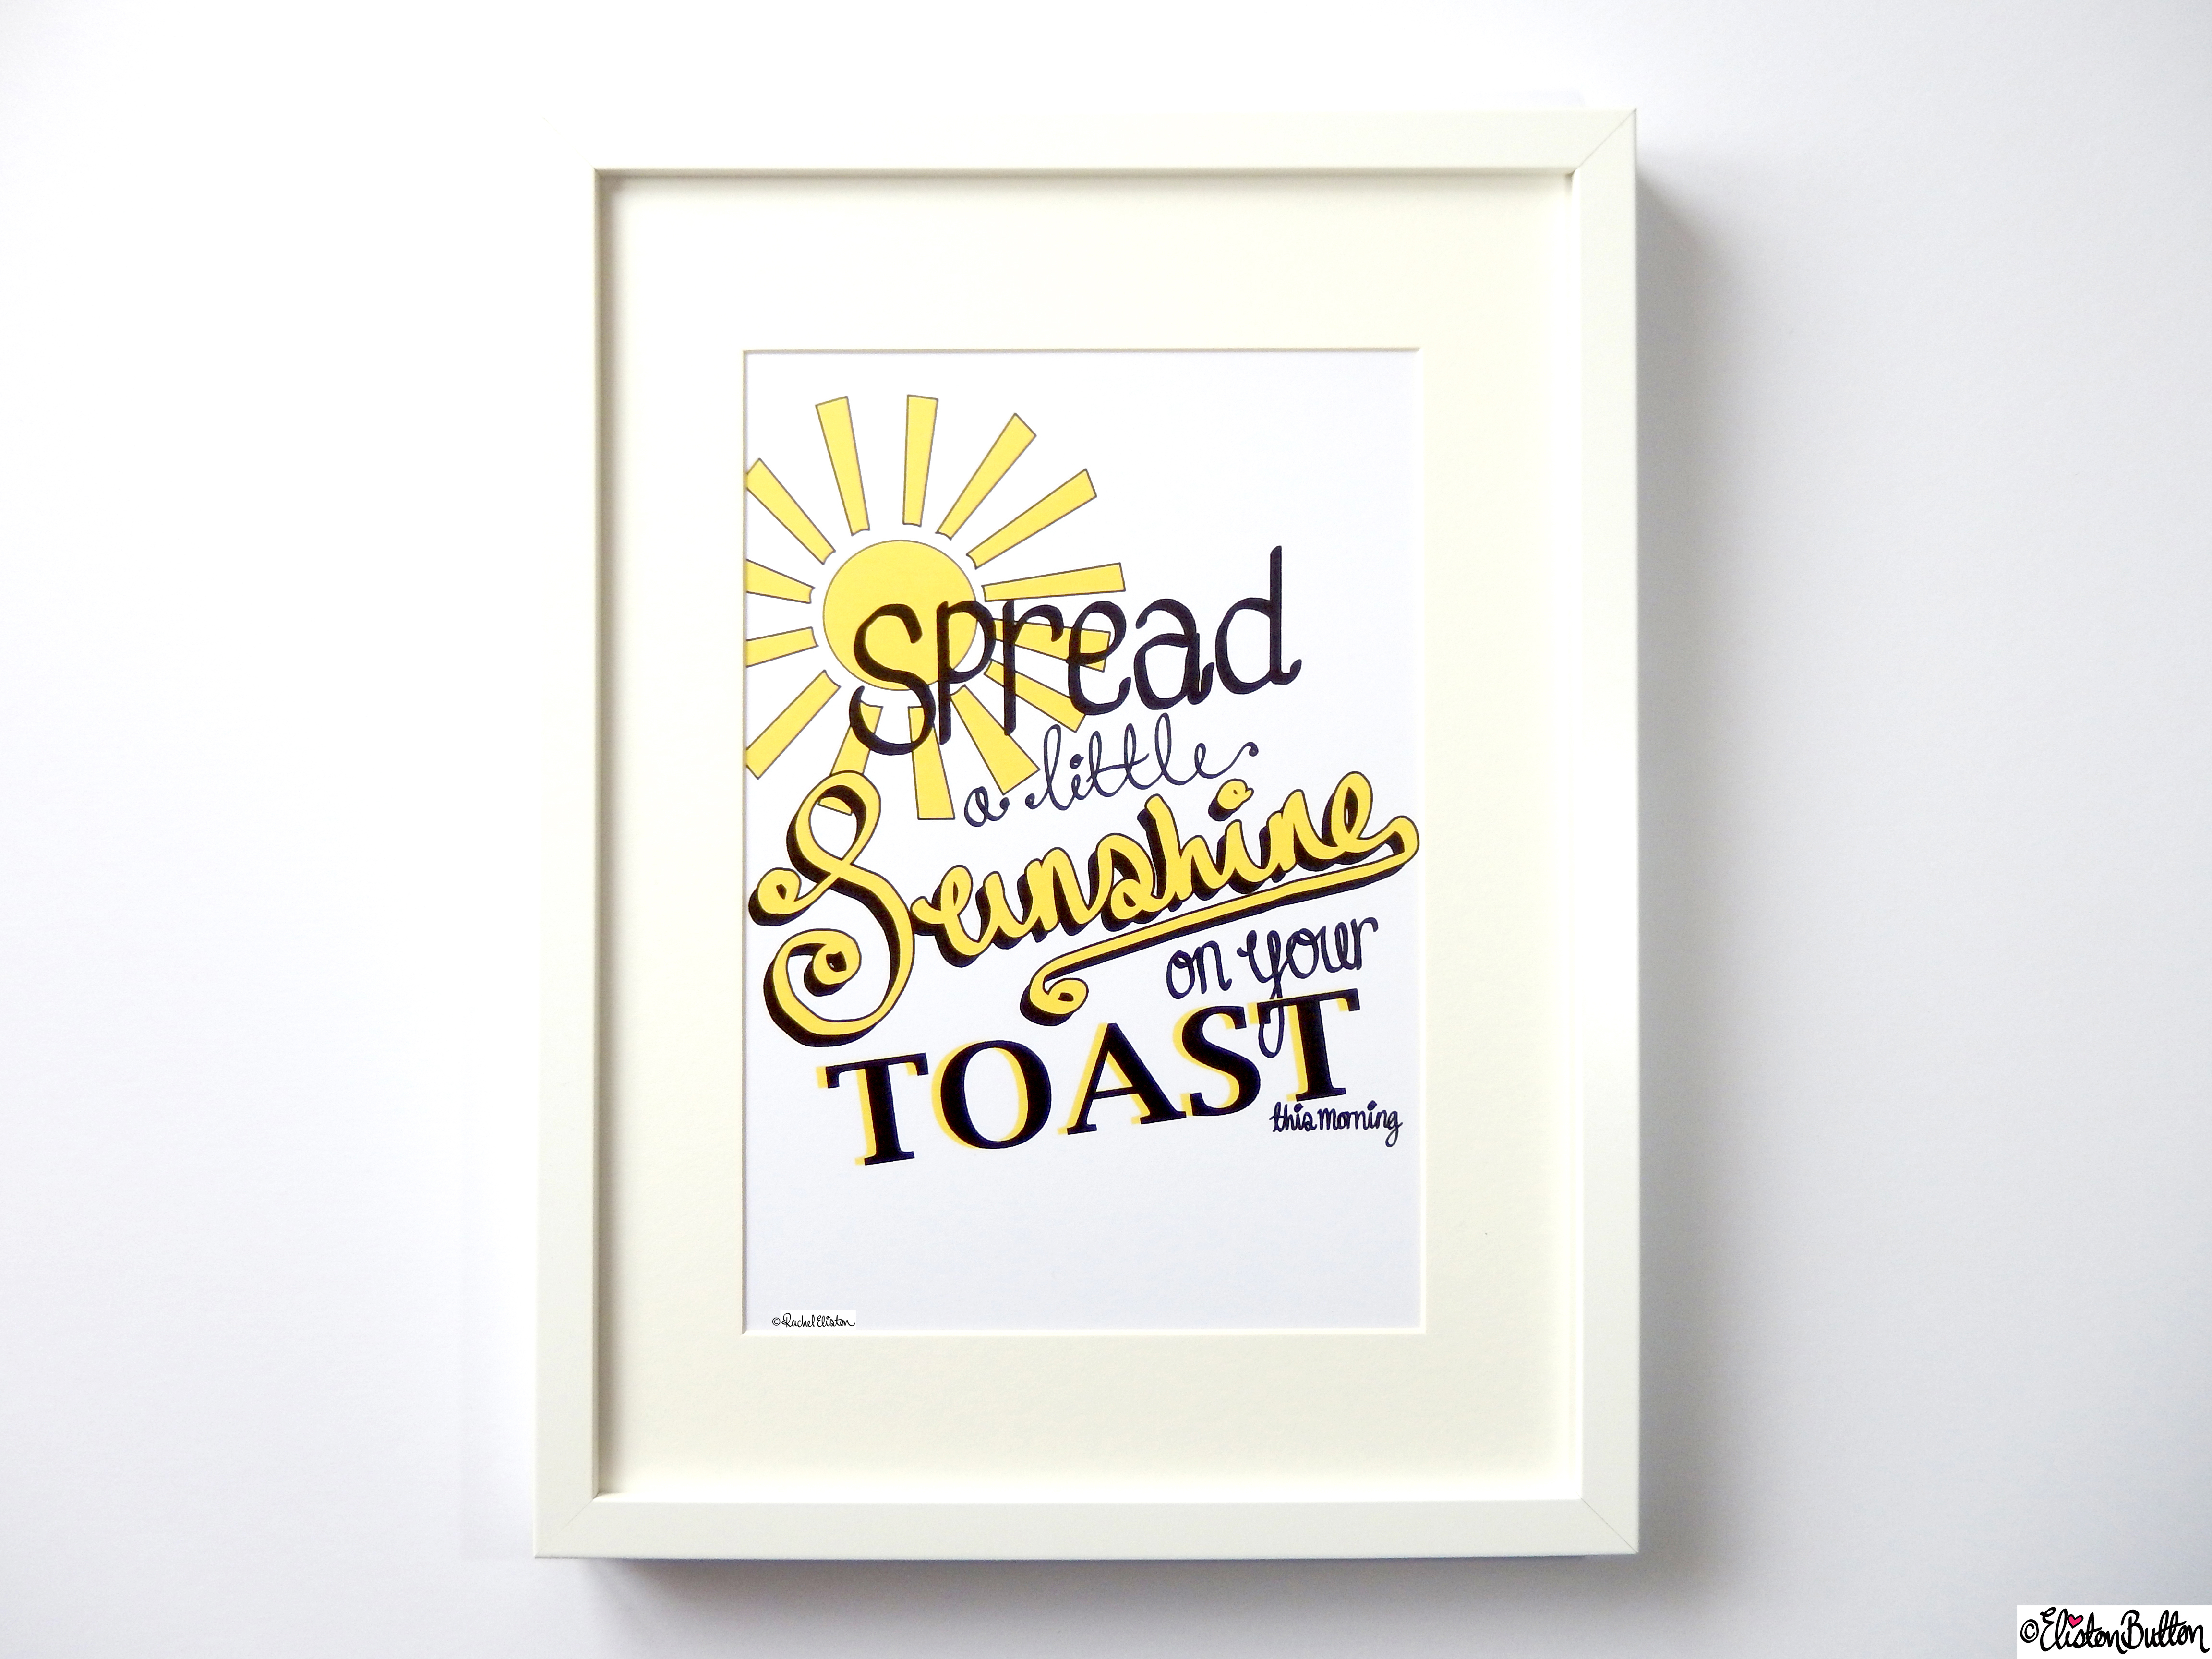 Spread a Little Sunshine Typographic Quote Illustration Wall Art Print (2) - Create 28 - No. 22 & 23 - Typographic Quote Illustrations at www.elistonbutton.com - Eliston Button - That Crafty Kid – Art, Design, Craft & Adventure.